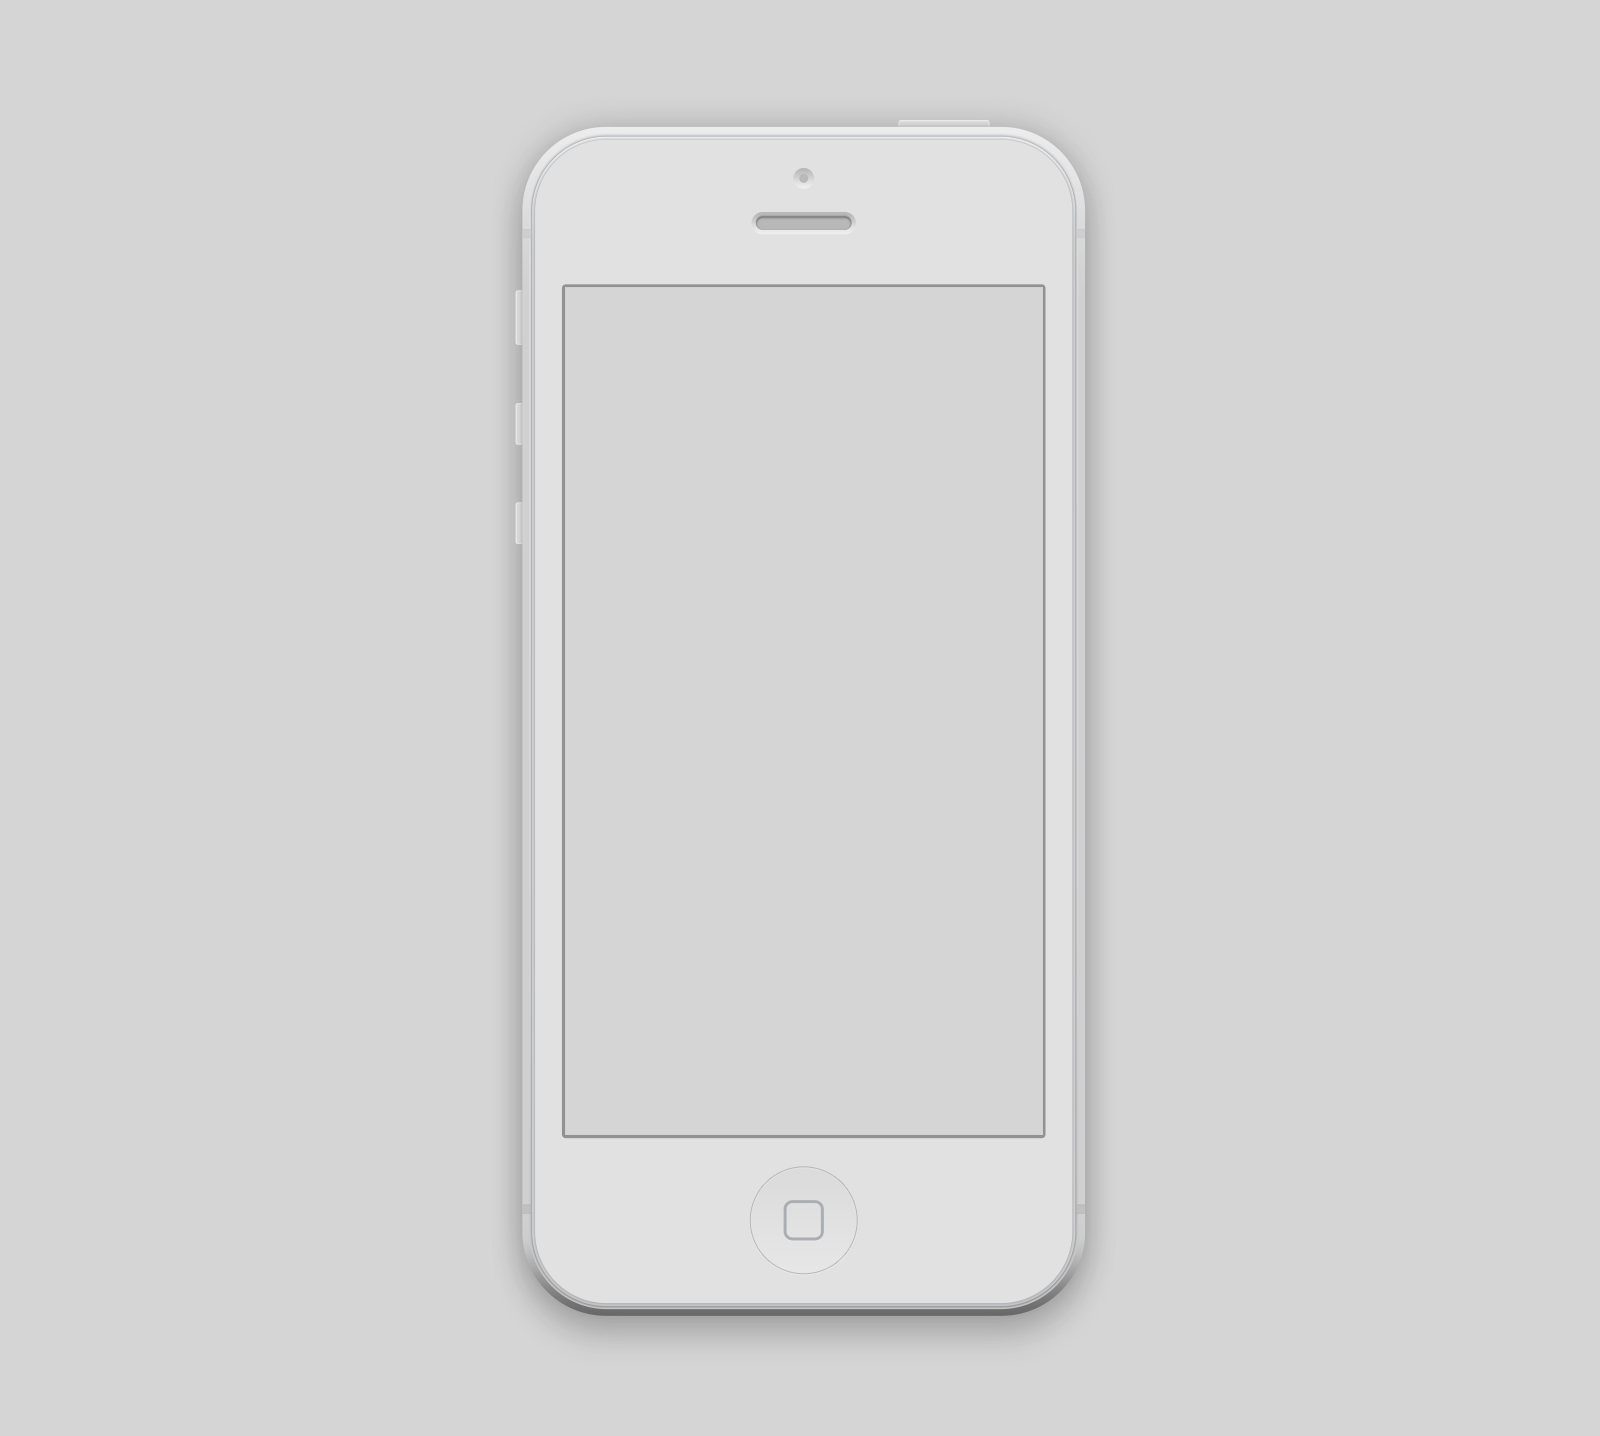 iPhone 5 White PSD Mockup